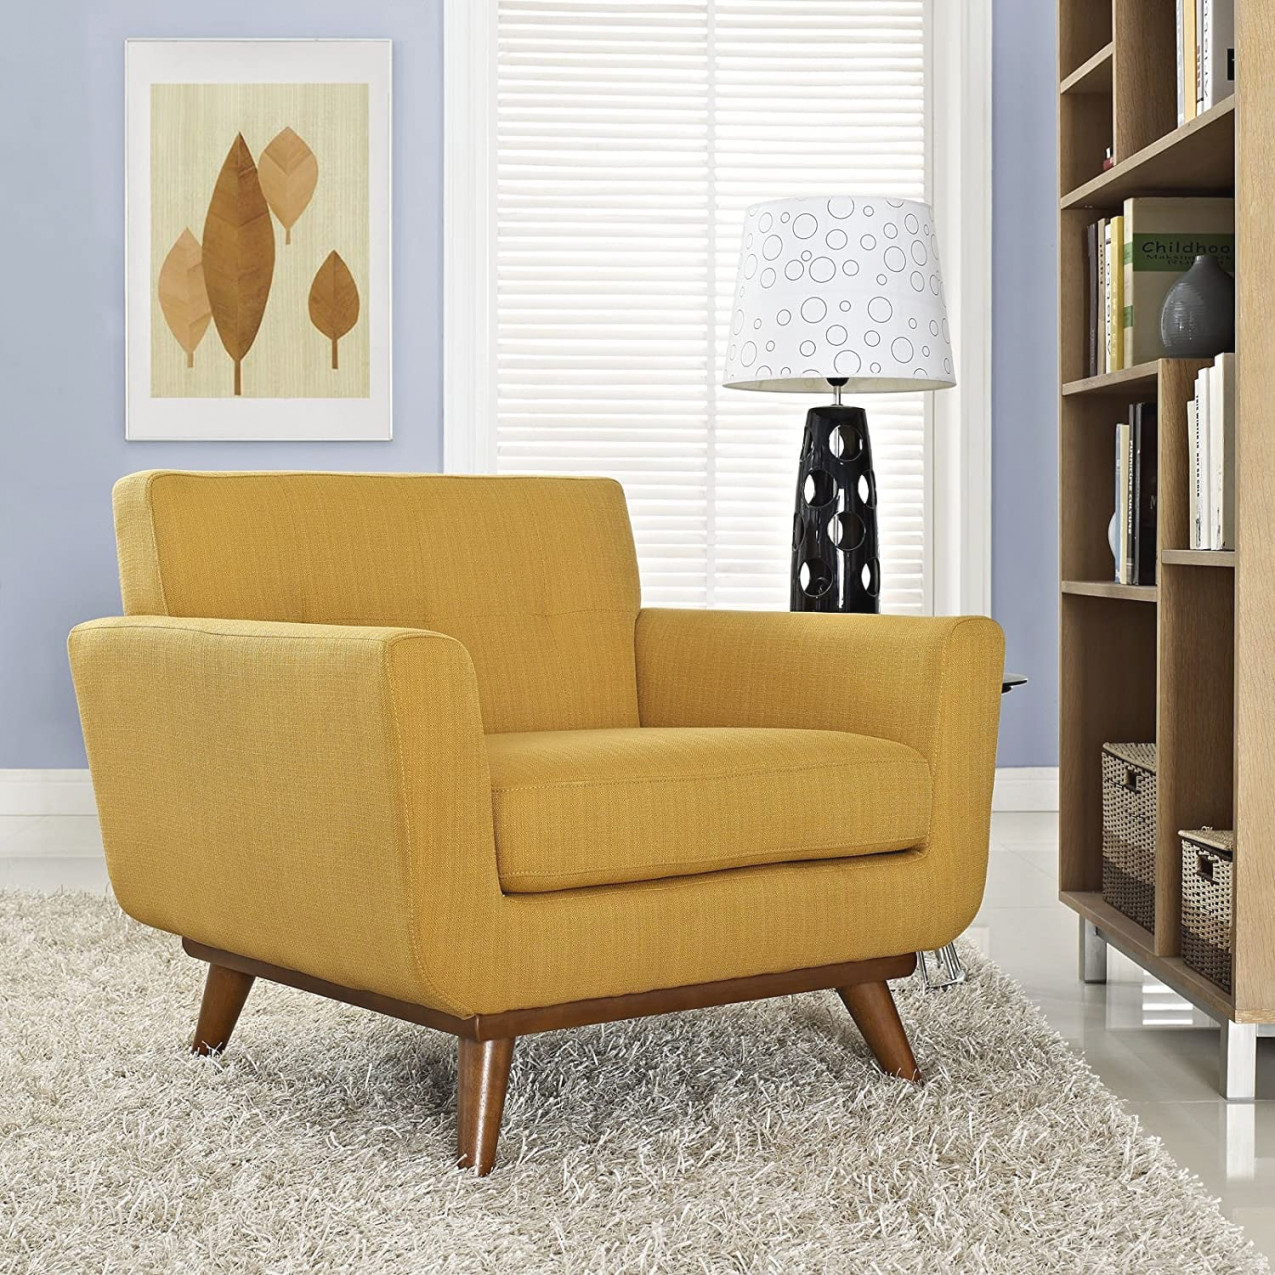 Best And Most Comfortable Lounge Chairs | Popsugar Home intended for 15 Unique Gallery For Modern Chairs For Living Room